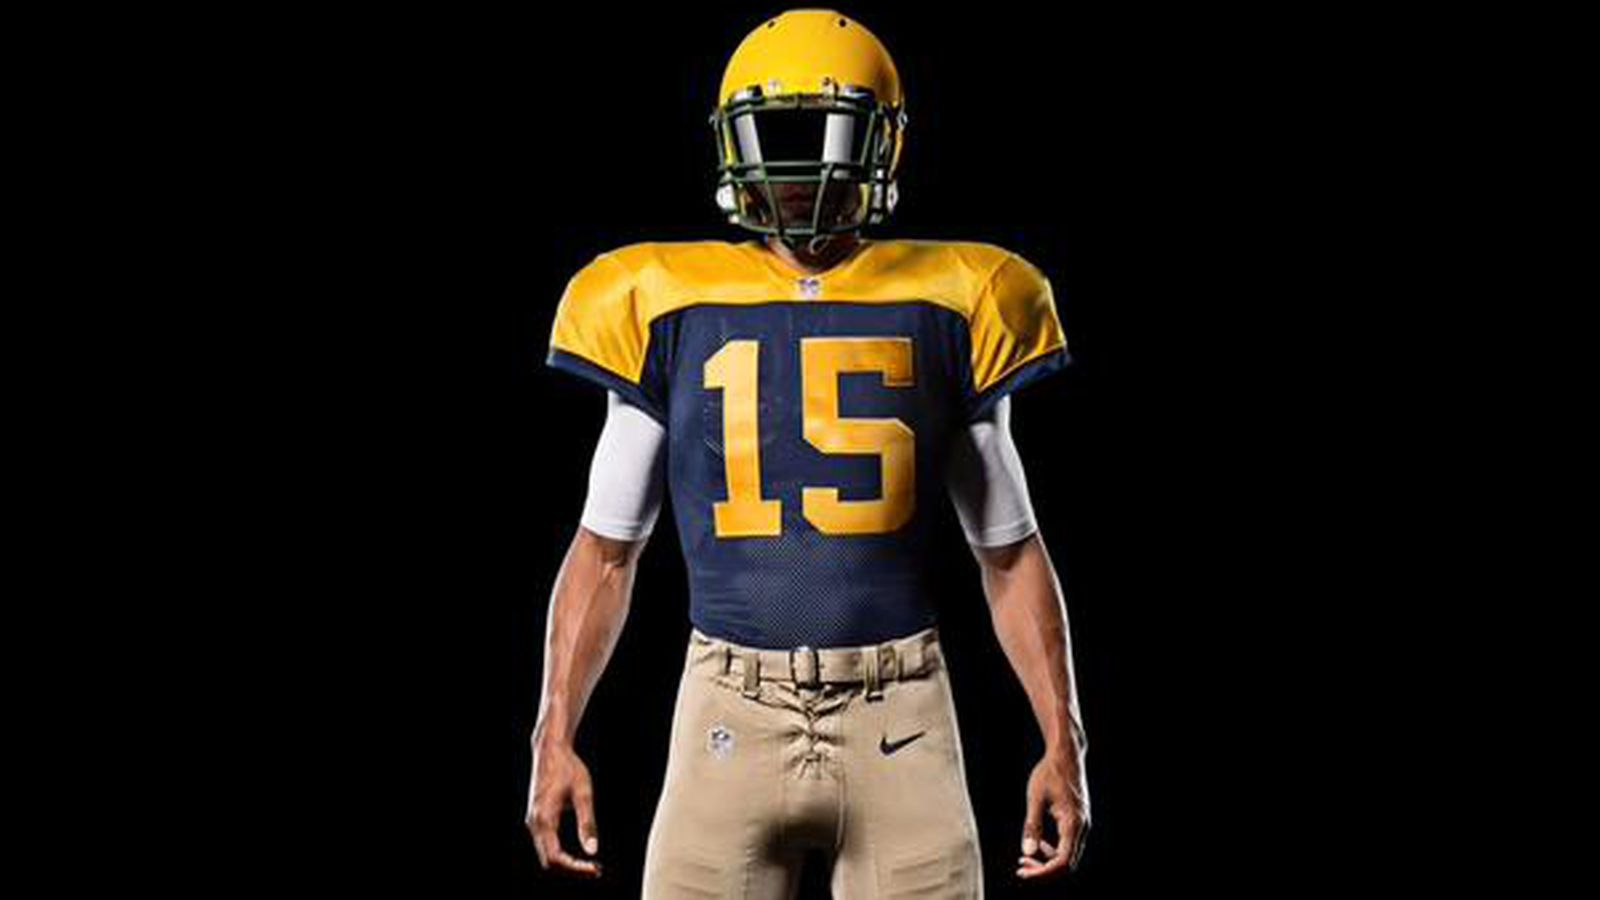 Packers unveiled alternate uniforms that are throwbacks to throwbacks ...